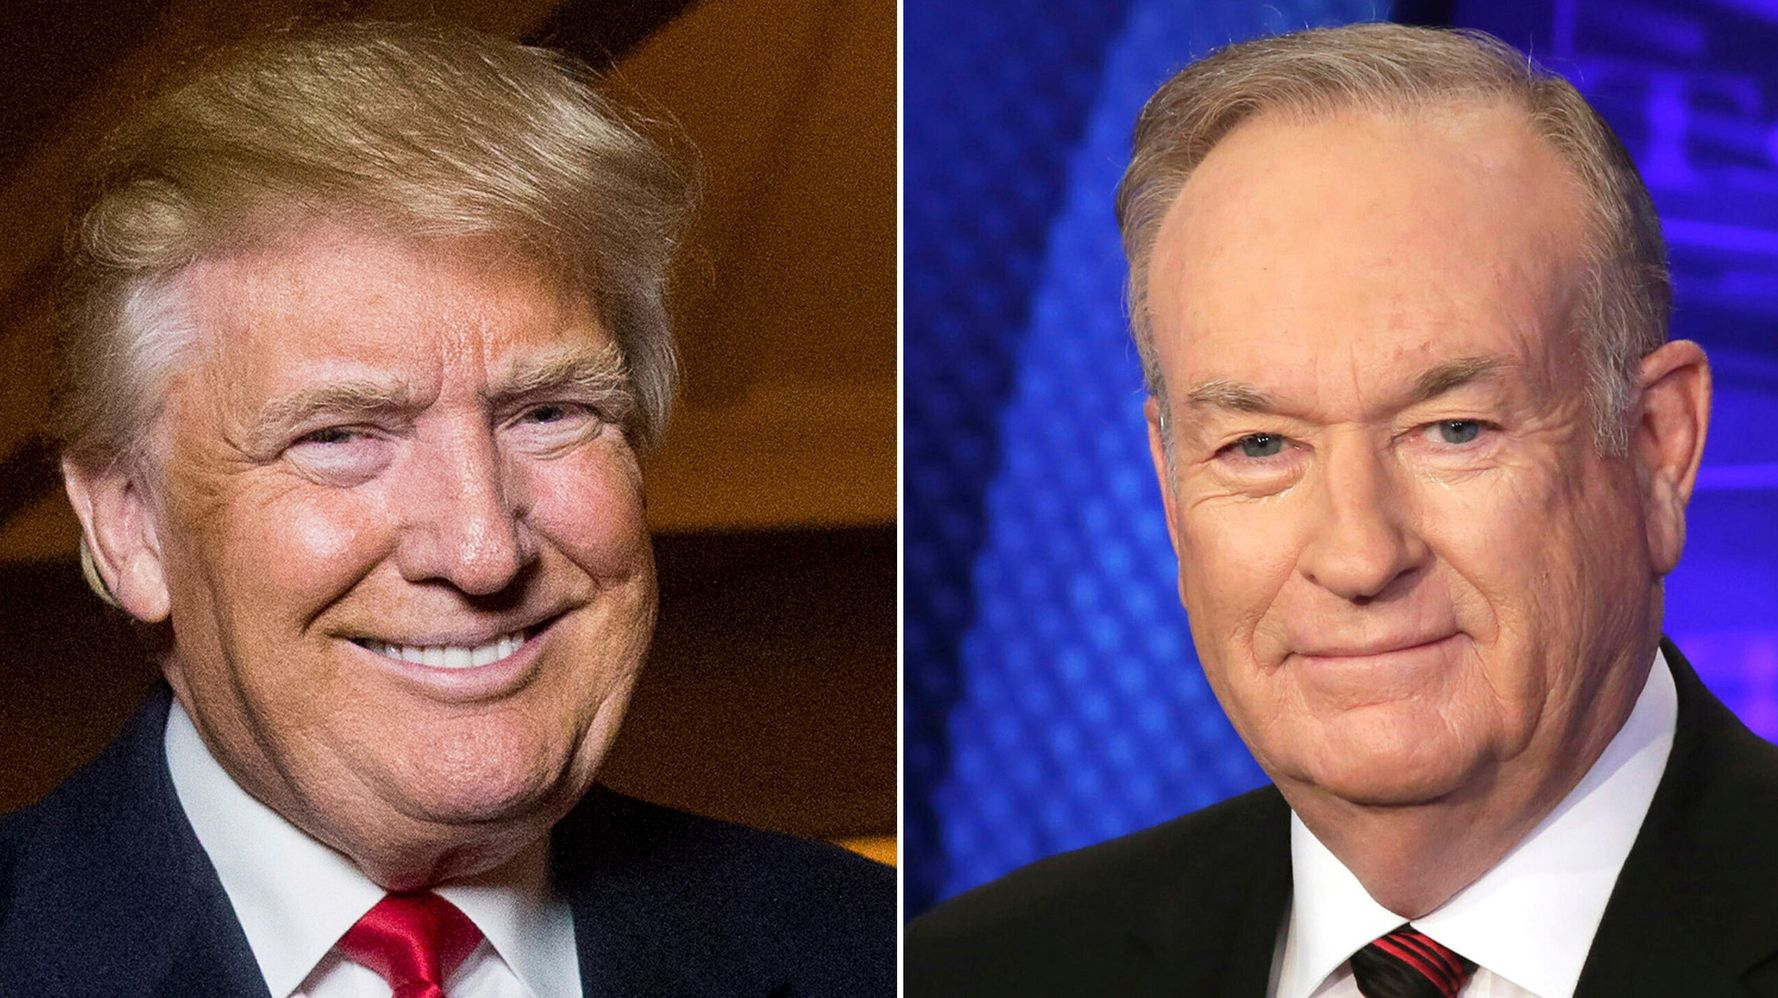 Westlake Legal Group 5d53c27f220000d002f56194 Twitter Users Mock Bill O'Reilly's Hilariously Terrible 'Research' Into Trump